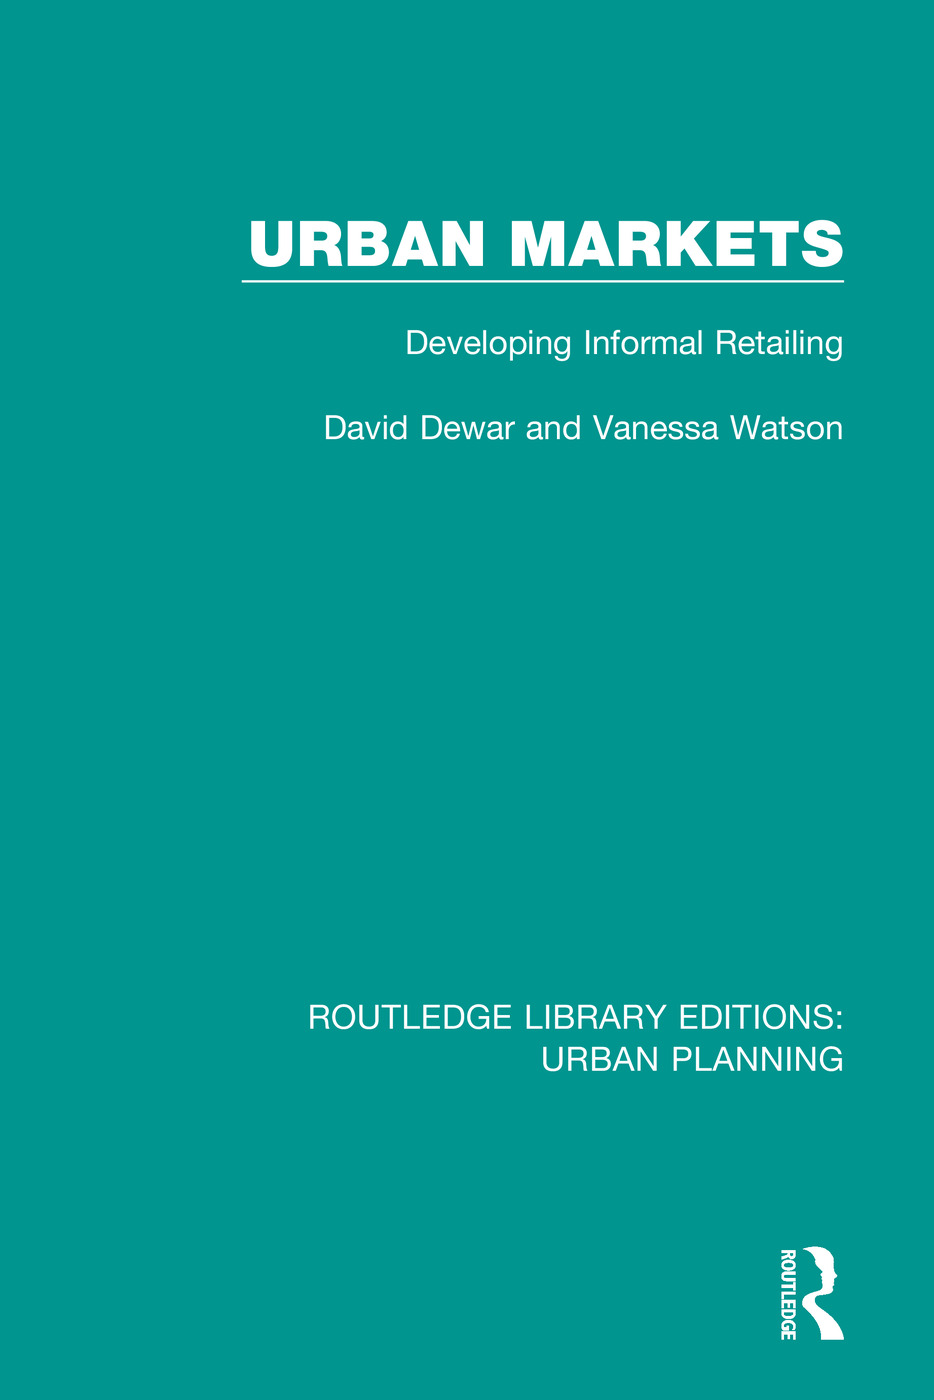 Urban Markets: Developing Informal Retailing book cover